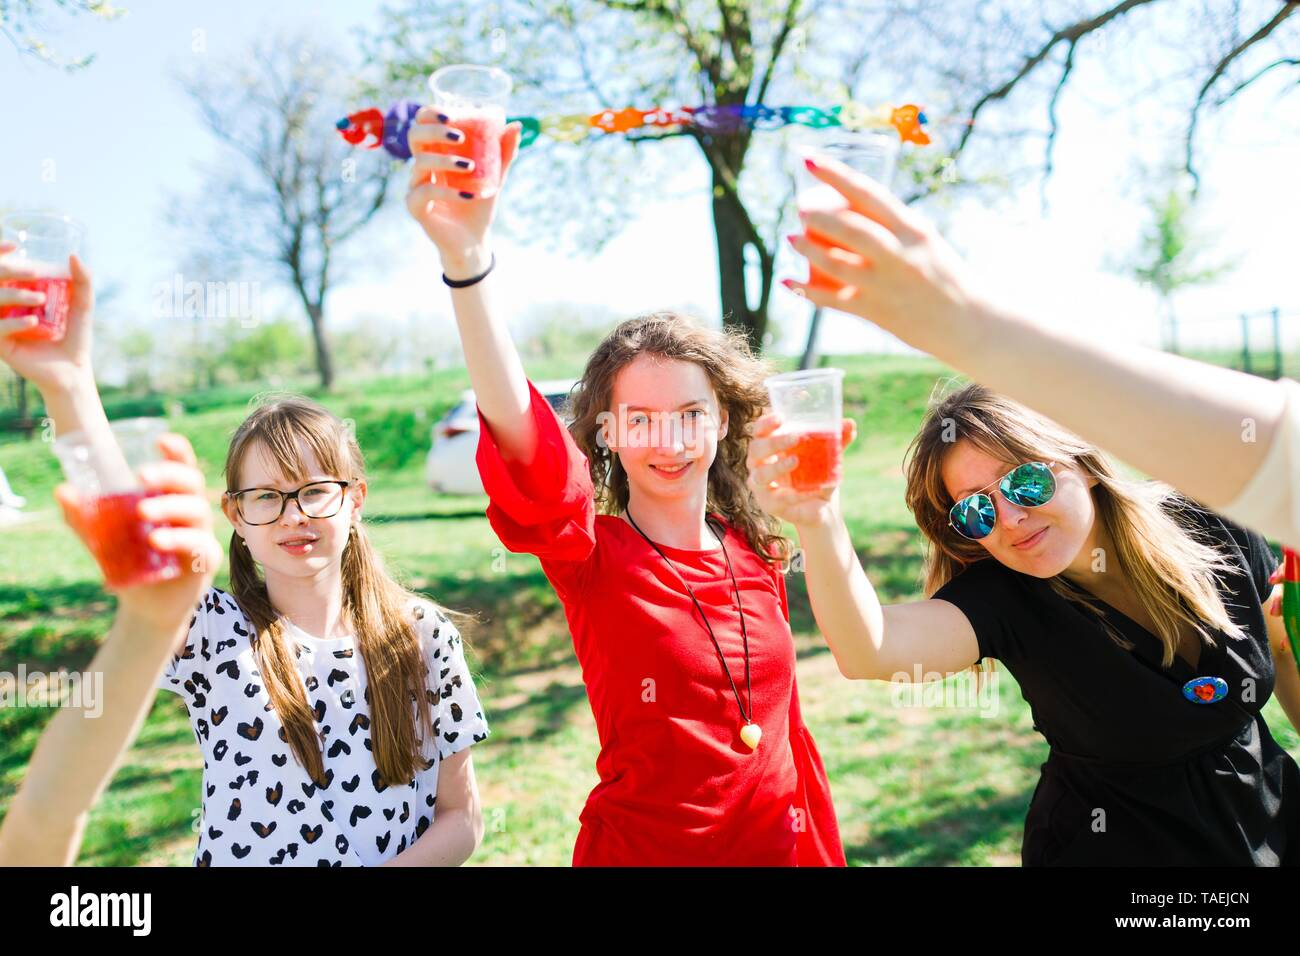 Toast with child champagne on birthday garden party using plastic cups - Stock Image